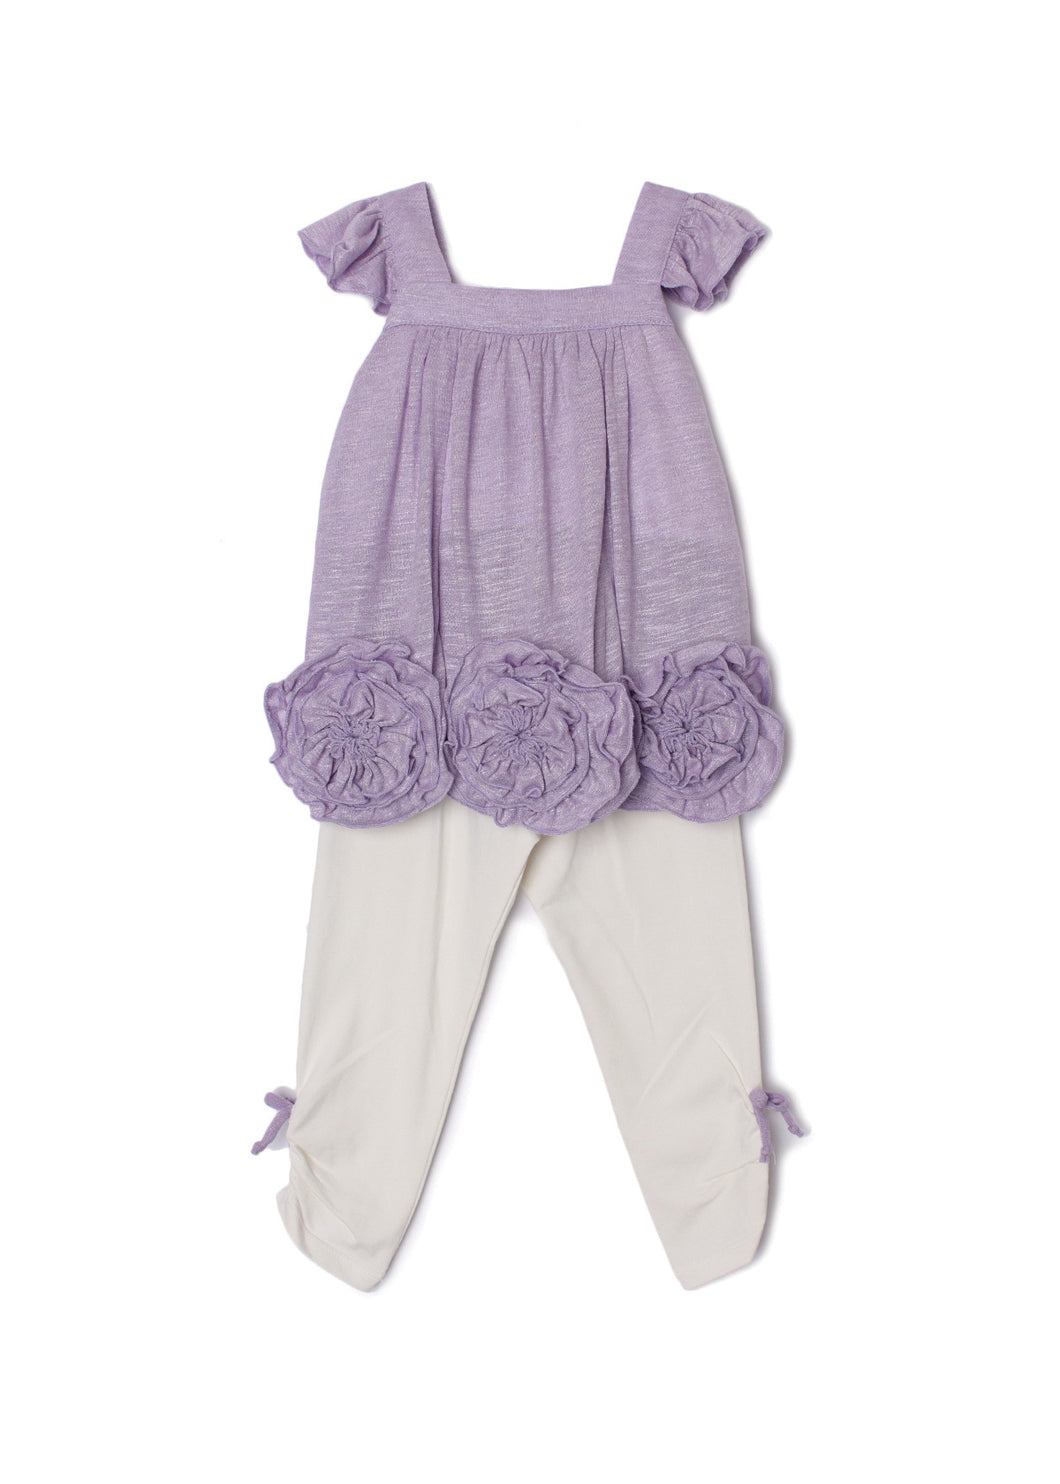 Isobella and Chloe Flora Dance Two Piece Set - Purple - Bloom Kids Collection - Isobella and Chloe